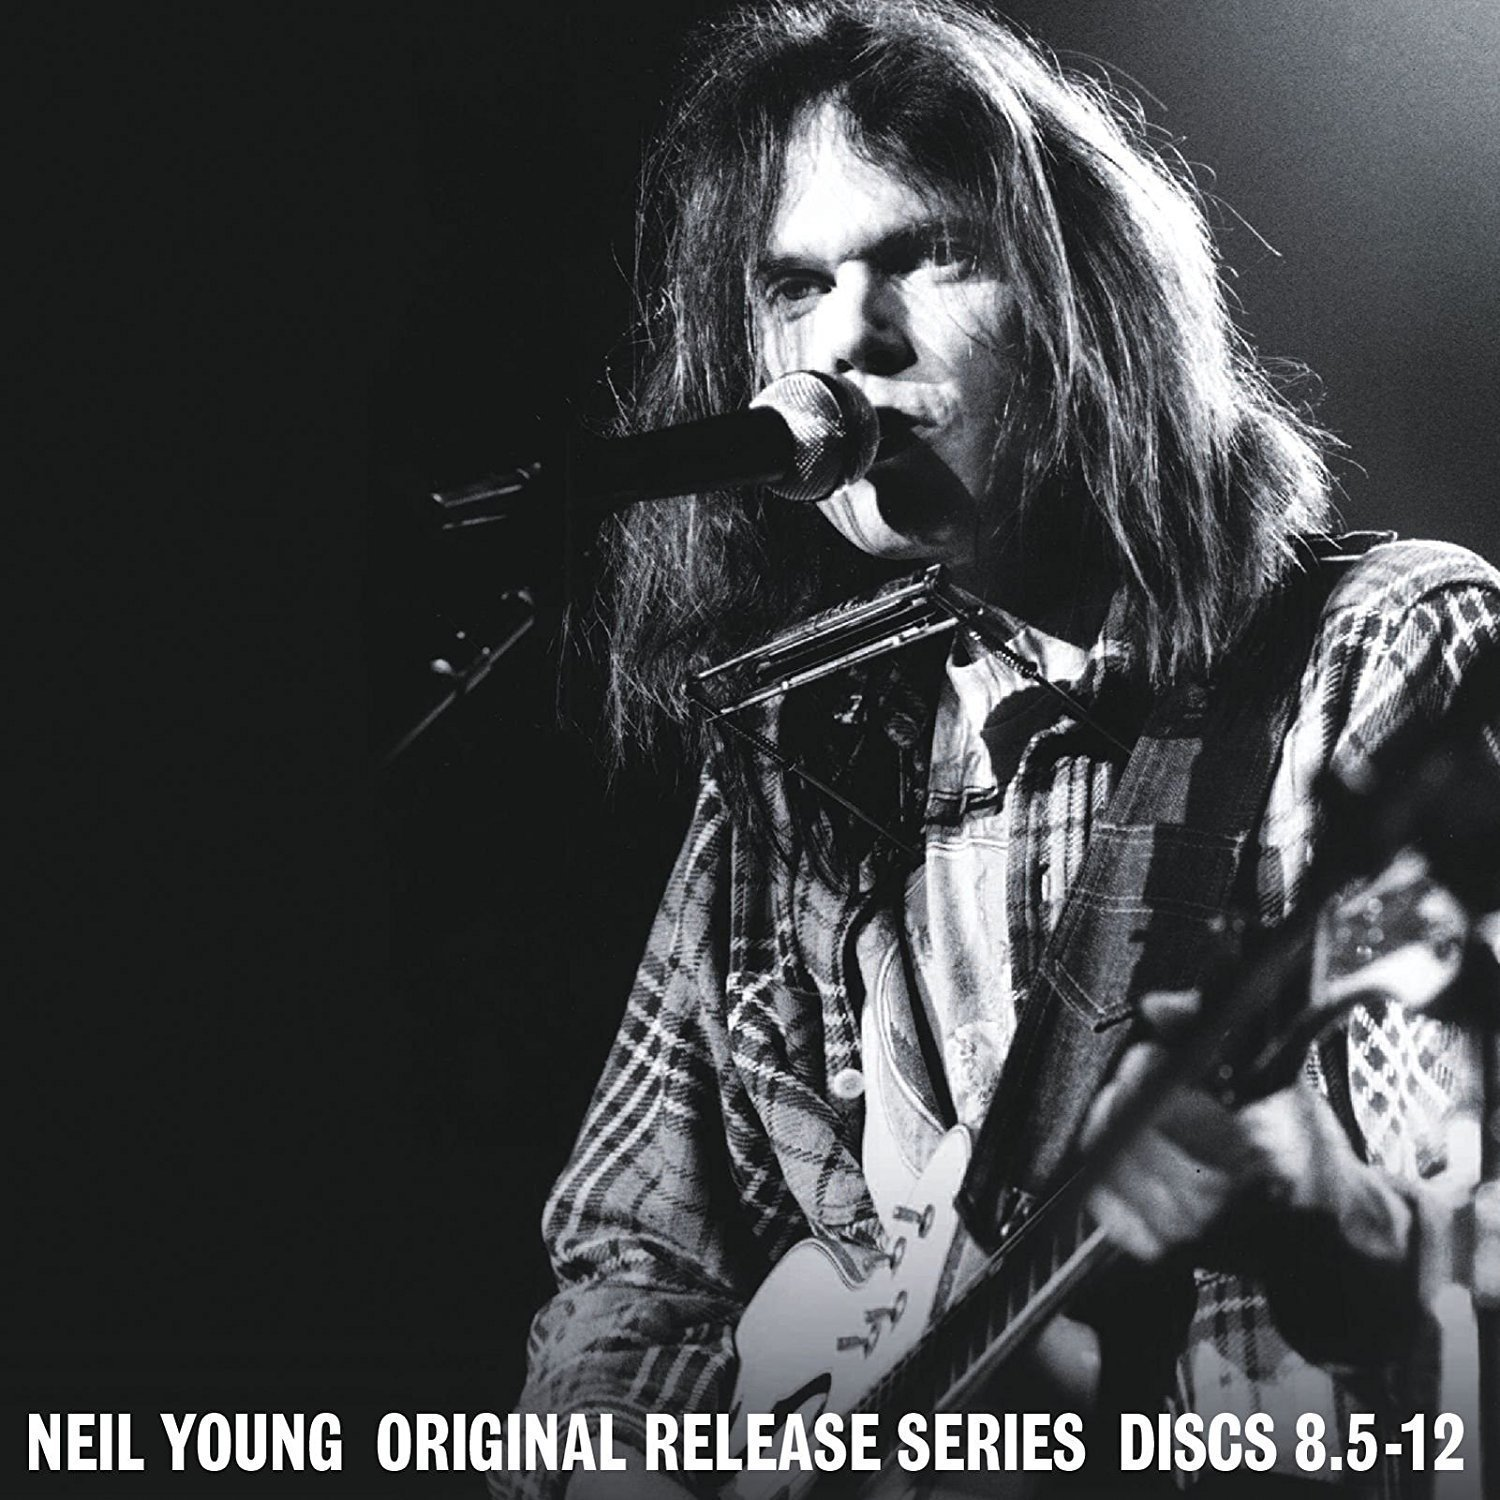 Neil Young - Page 5 81jurWr3cIL._SL1500_